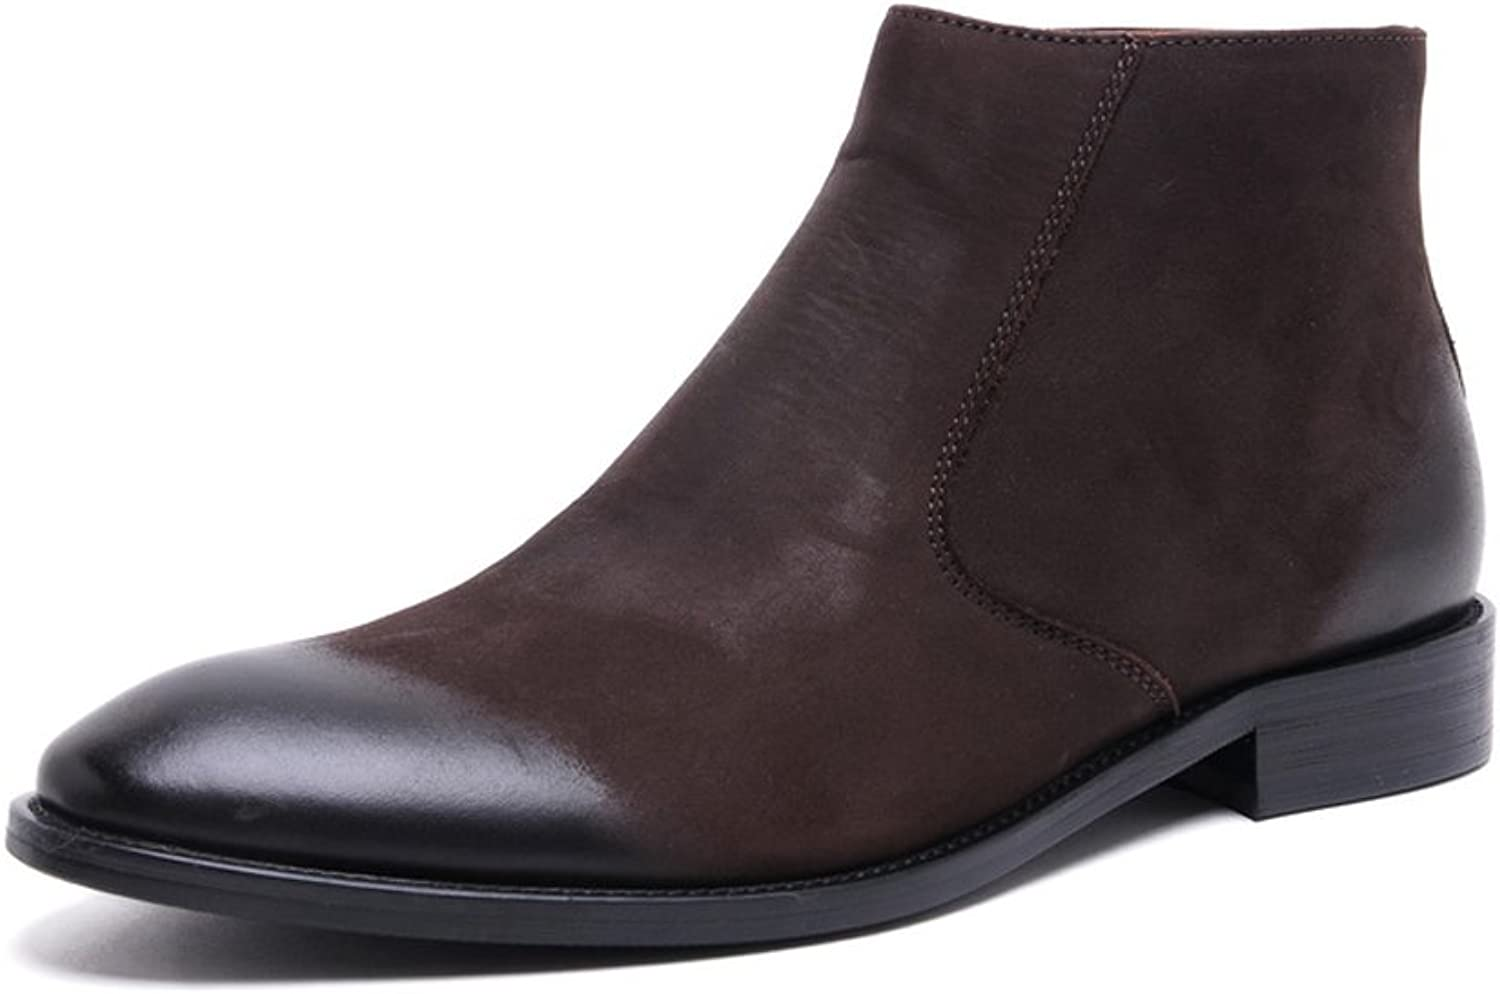 MEbox Mens Winter Leather Warmth Dress Oxfords shoes